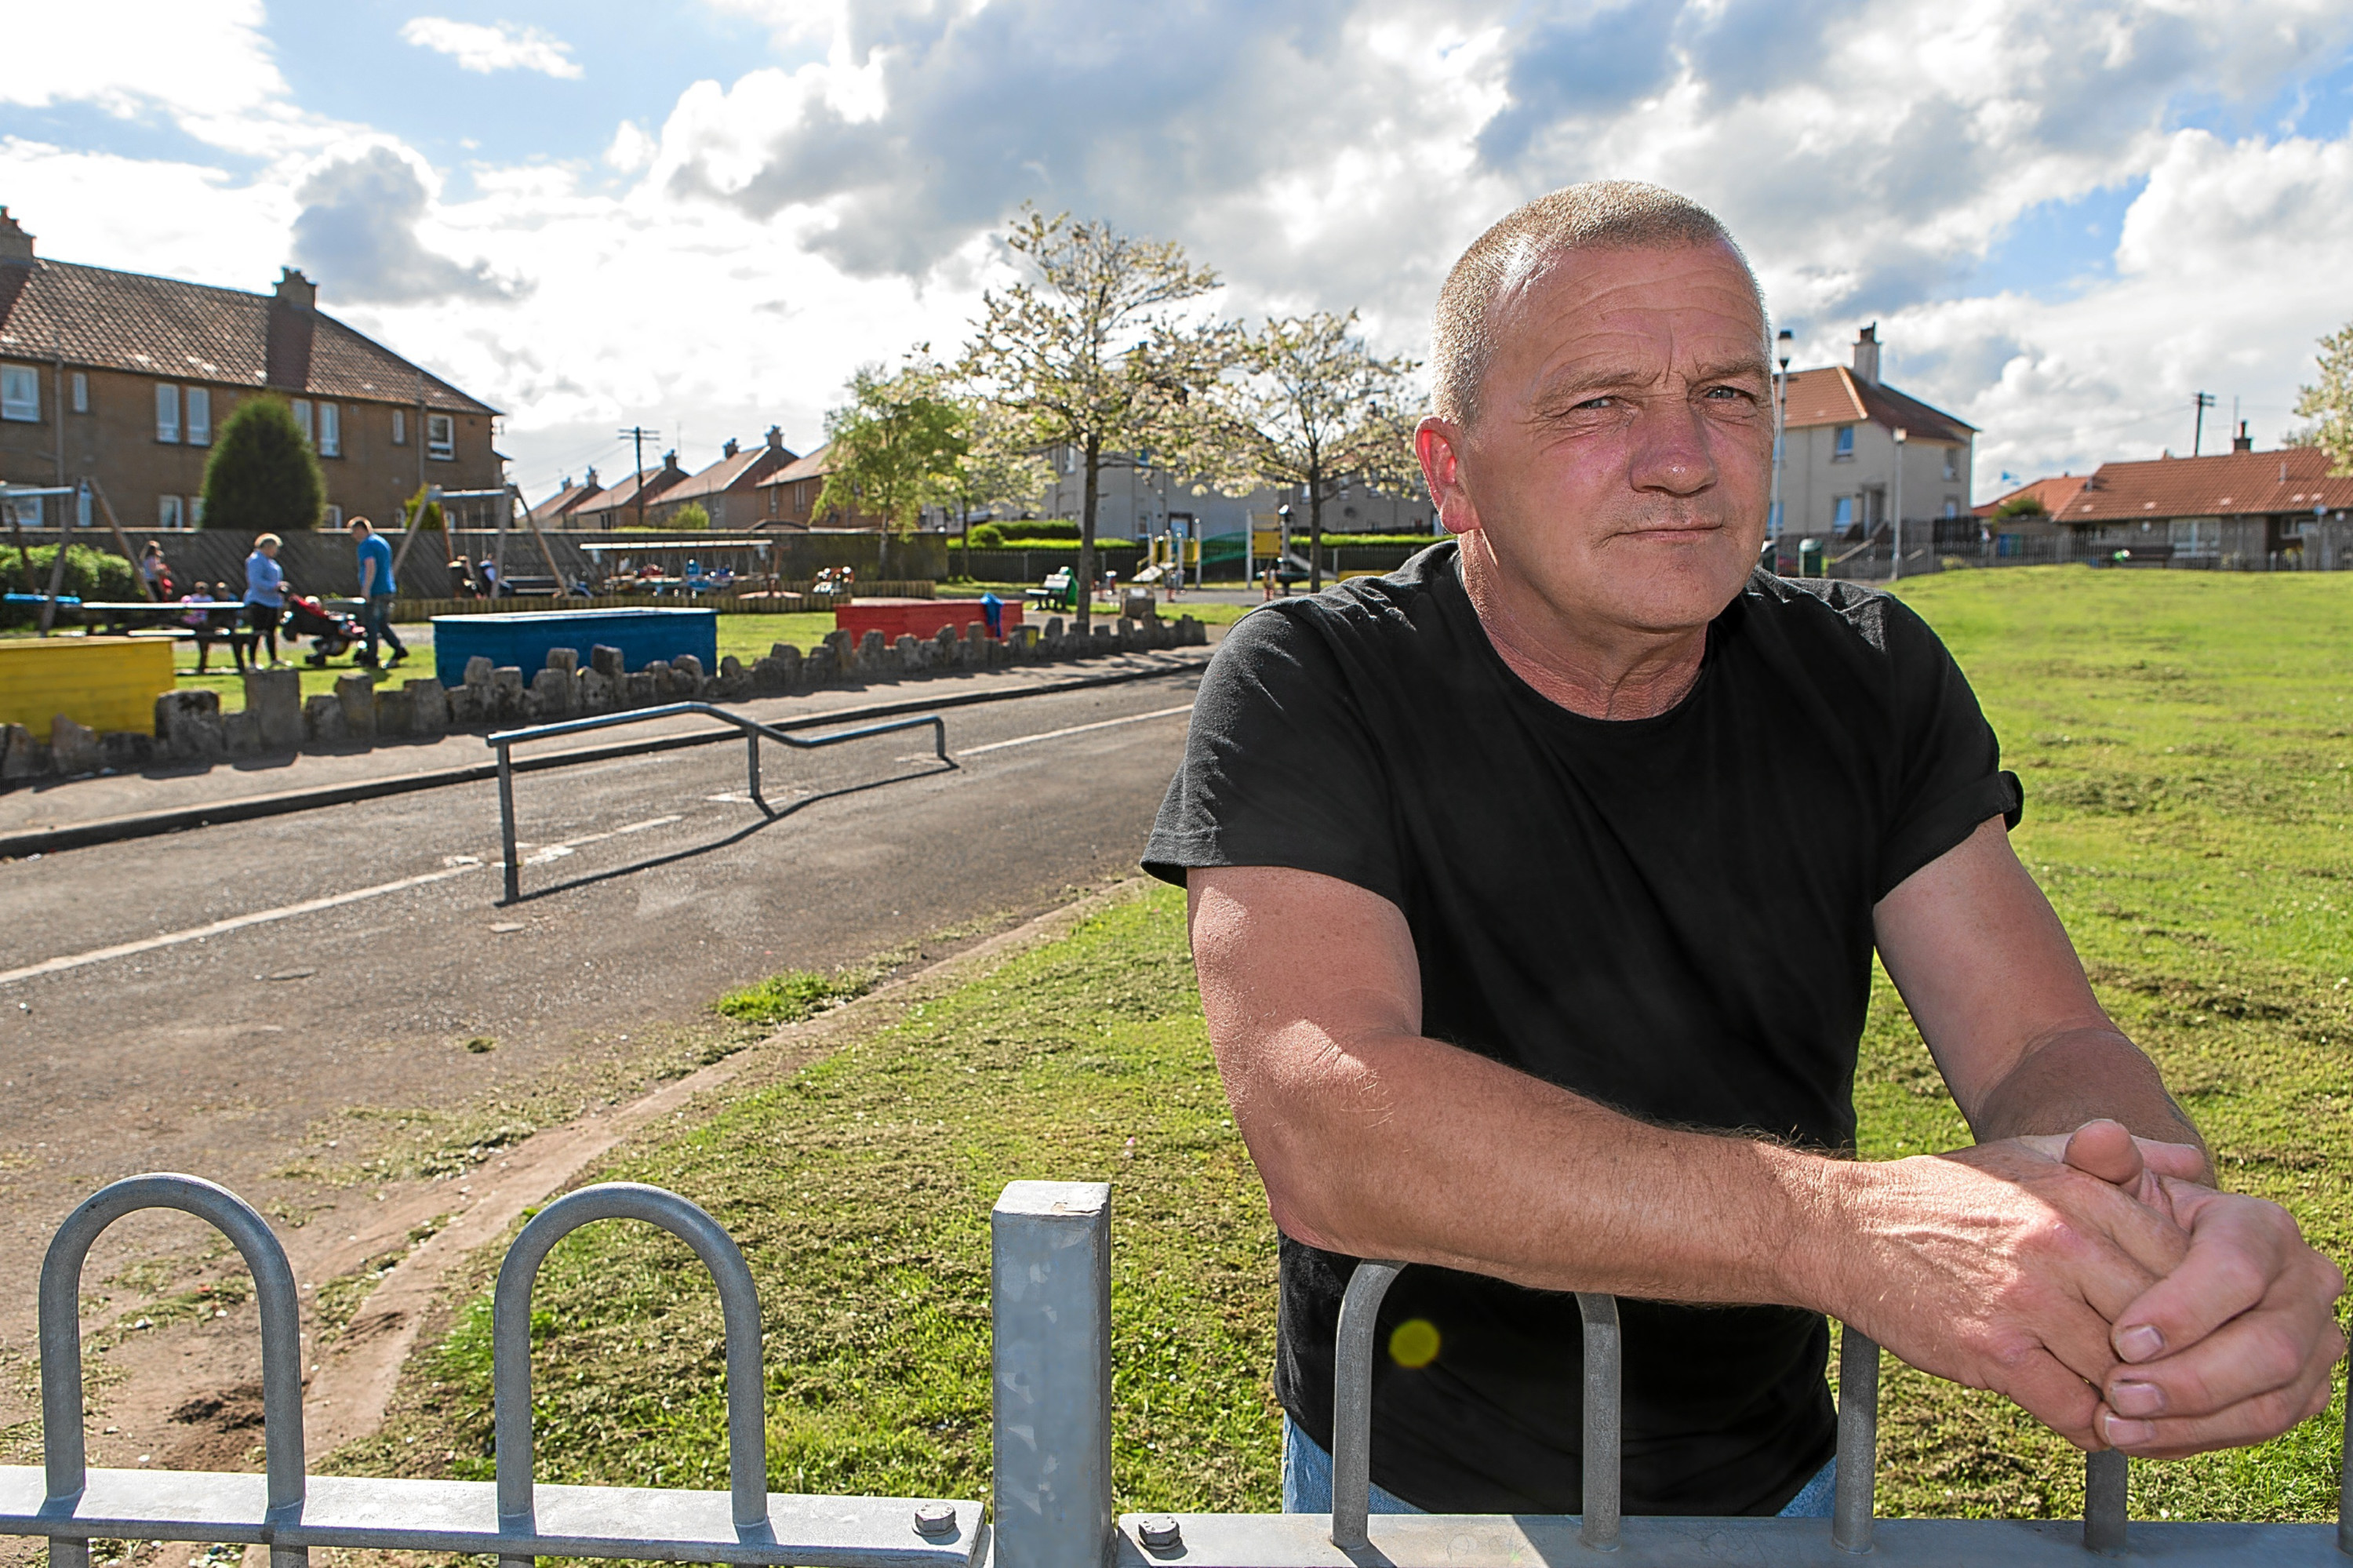 Rab O'Donnell is fed up with used drug users needles being found in the new play area in Saunders Street.